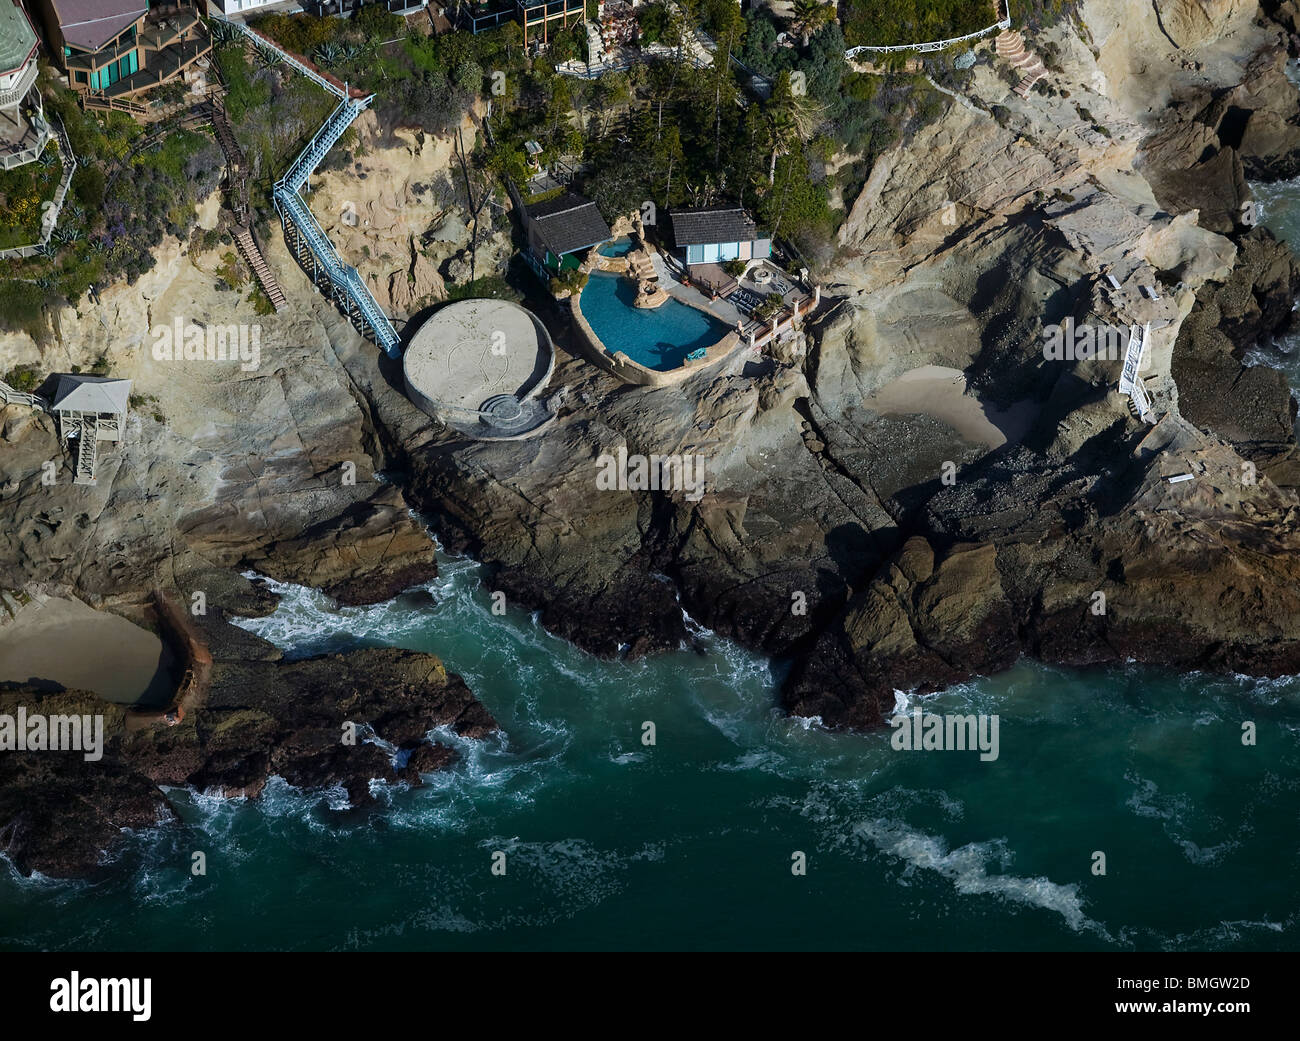 Swimming pool aerial view stock photos swimming pool aerial view stock images alamy for California private swimming pool code